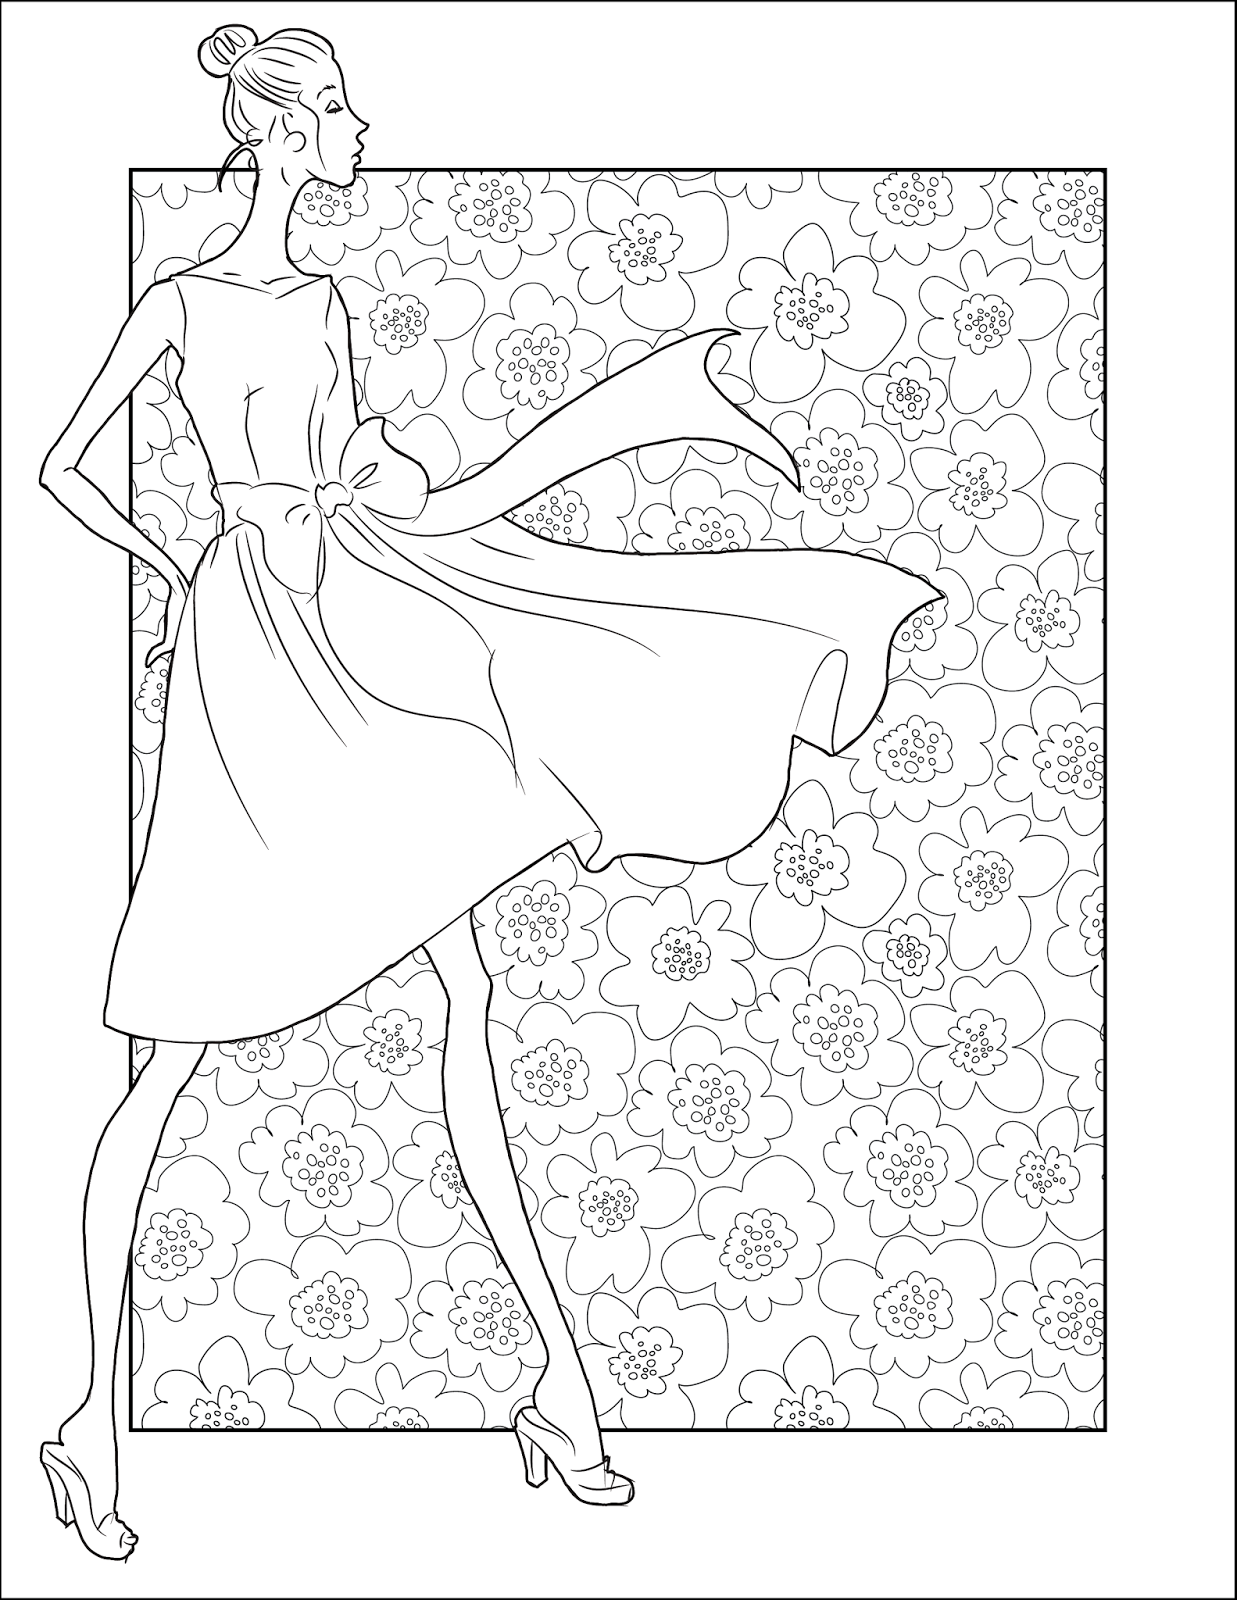 The Spinsterhood Diaries: Thursday Coloring Page: Fashion Girl